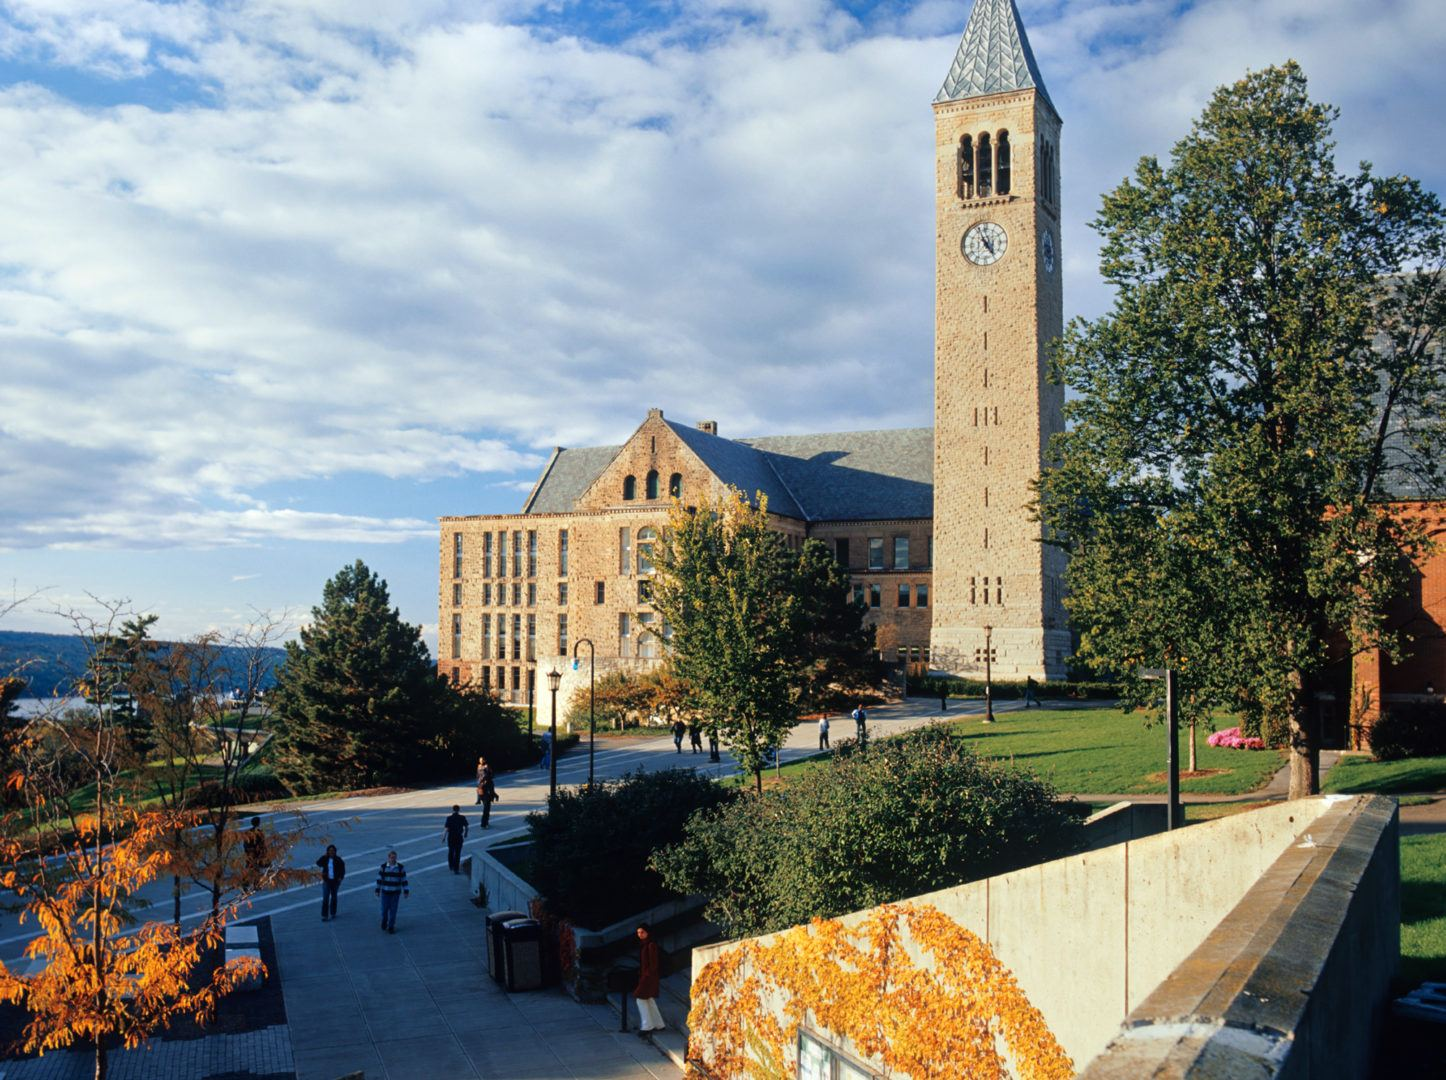 McGraw Tower, Uris Library, and Ho Plaza.